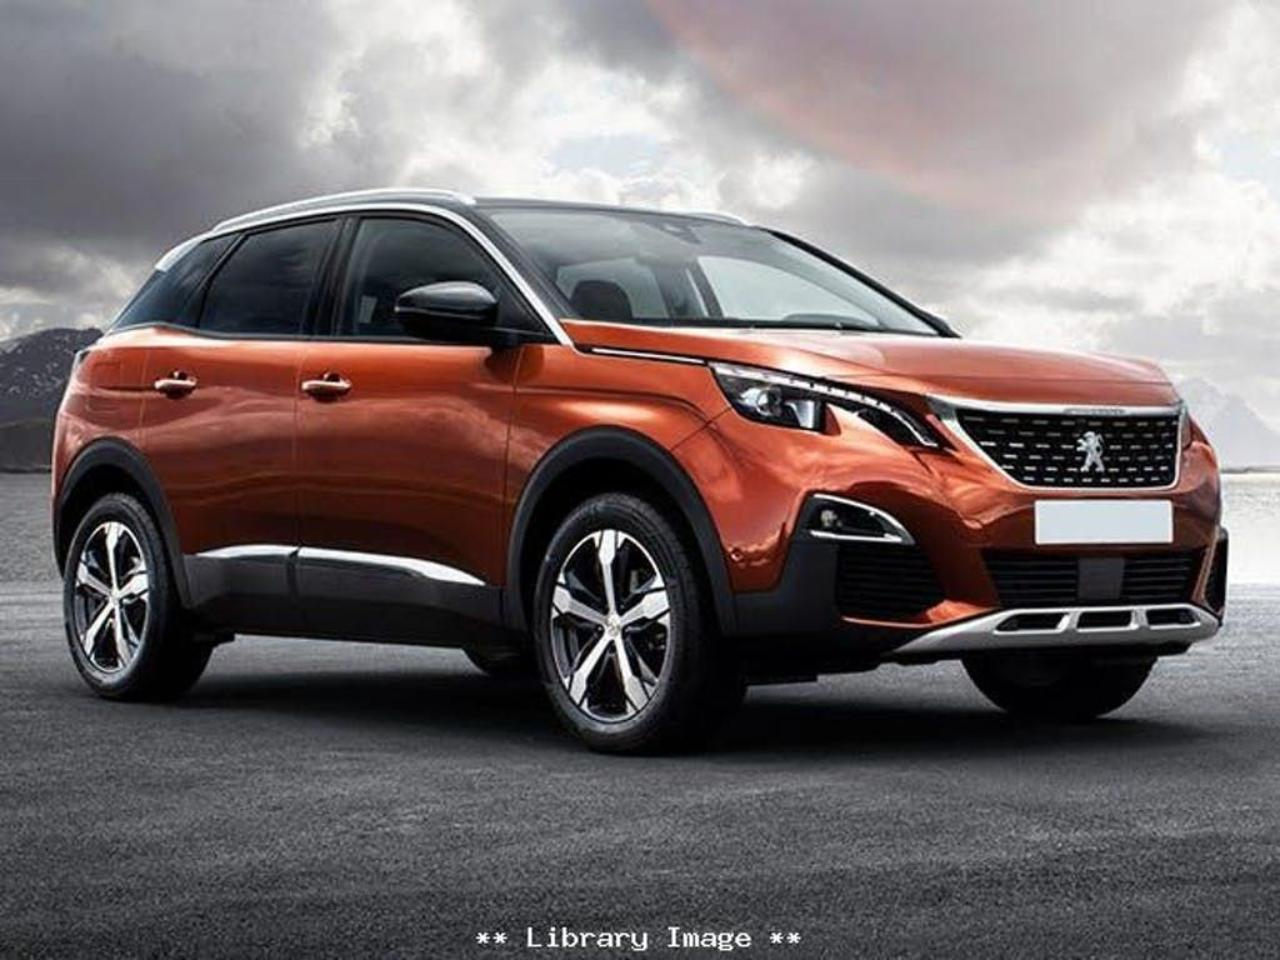 Peugeot 3008 1.6 E-HDI 115PS ACTIVE II 5DR AUTO